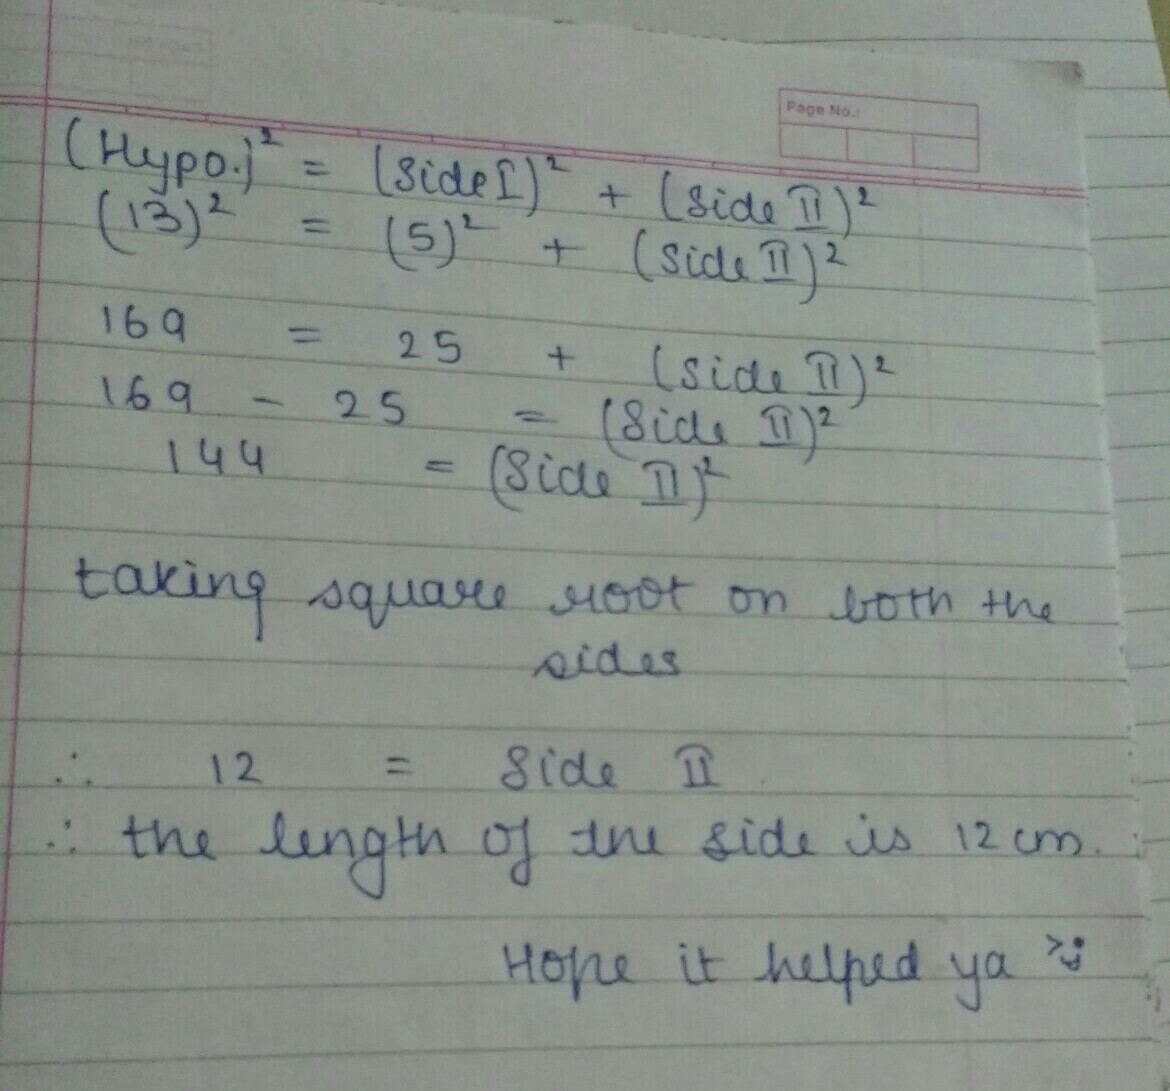 The hypotenuse and a side of a right angled triangle are